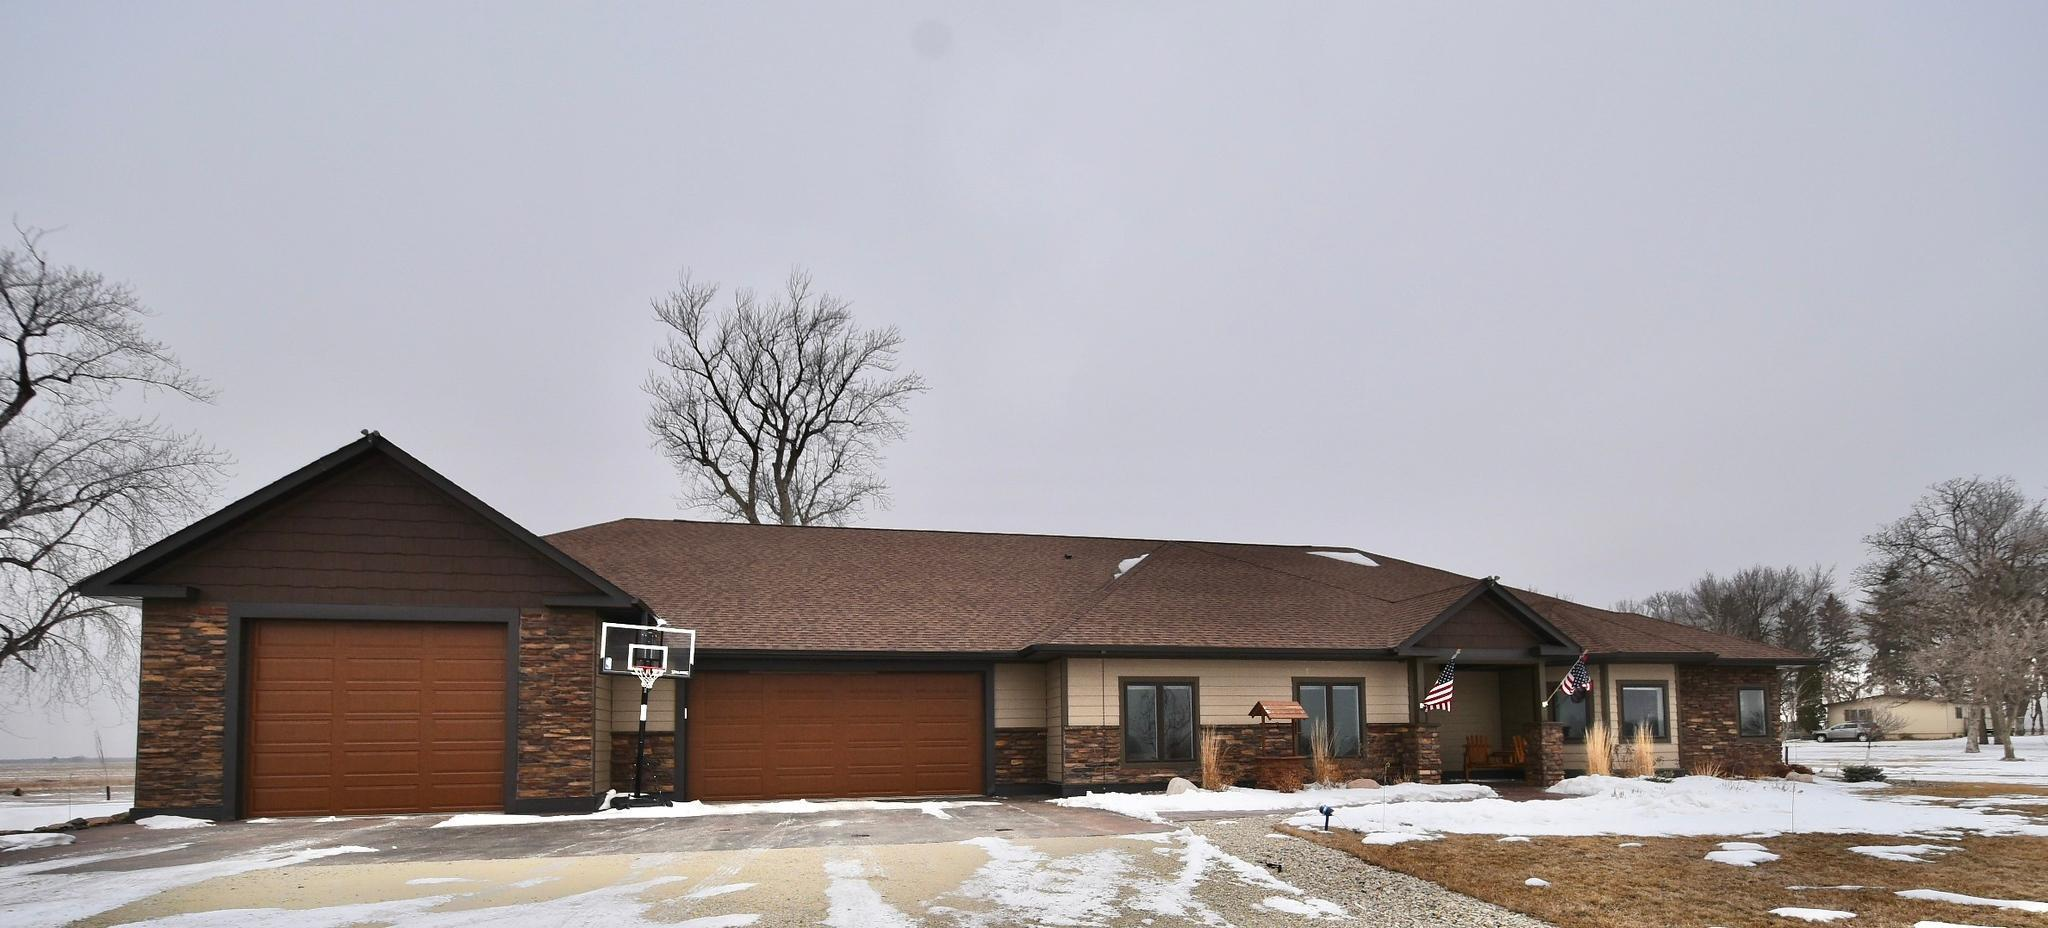 19525 610th Avenue Property Photo - Rose Creek, MN real estate listing